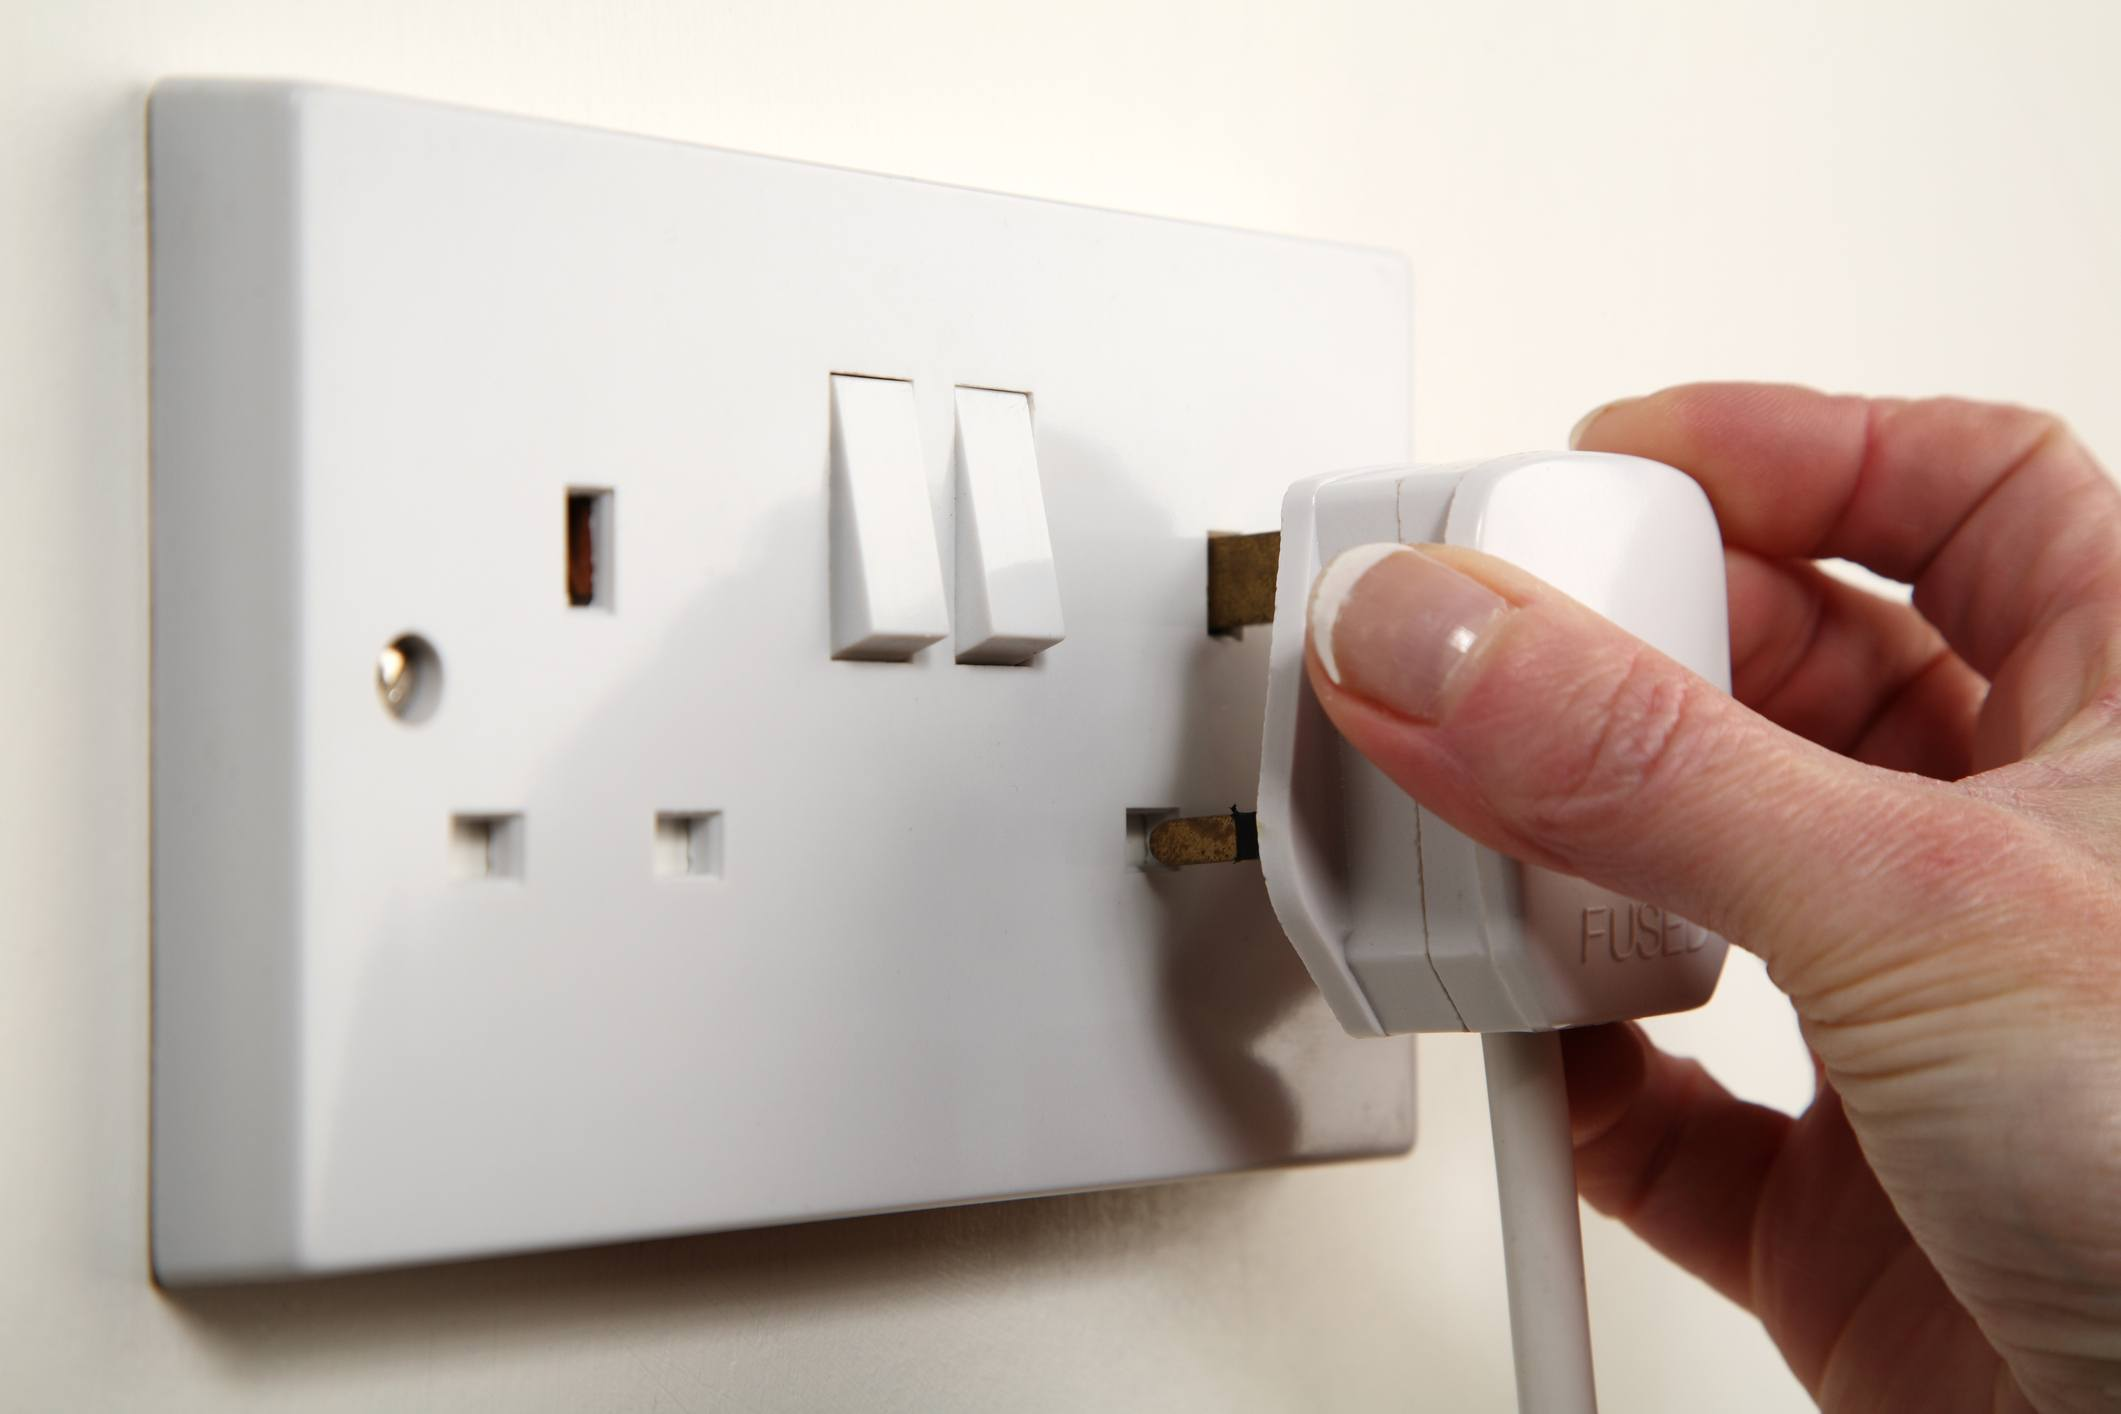 Hand plugging a plug into a grounded, British socket